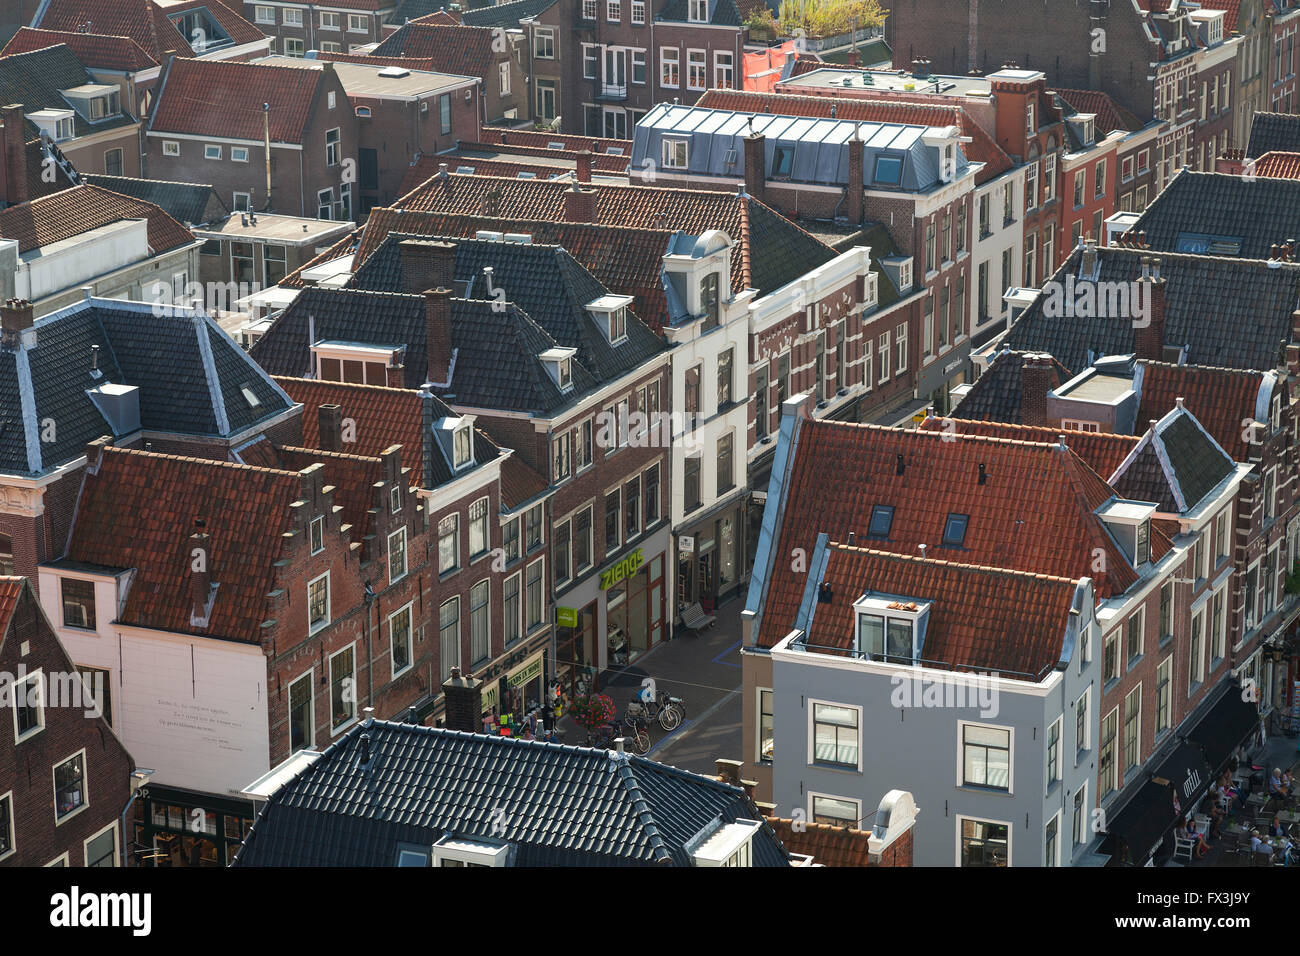 Roofs and streets seen from the tower of the New Church - Stock Image